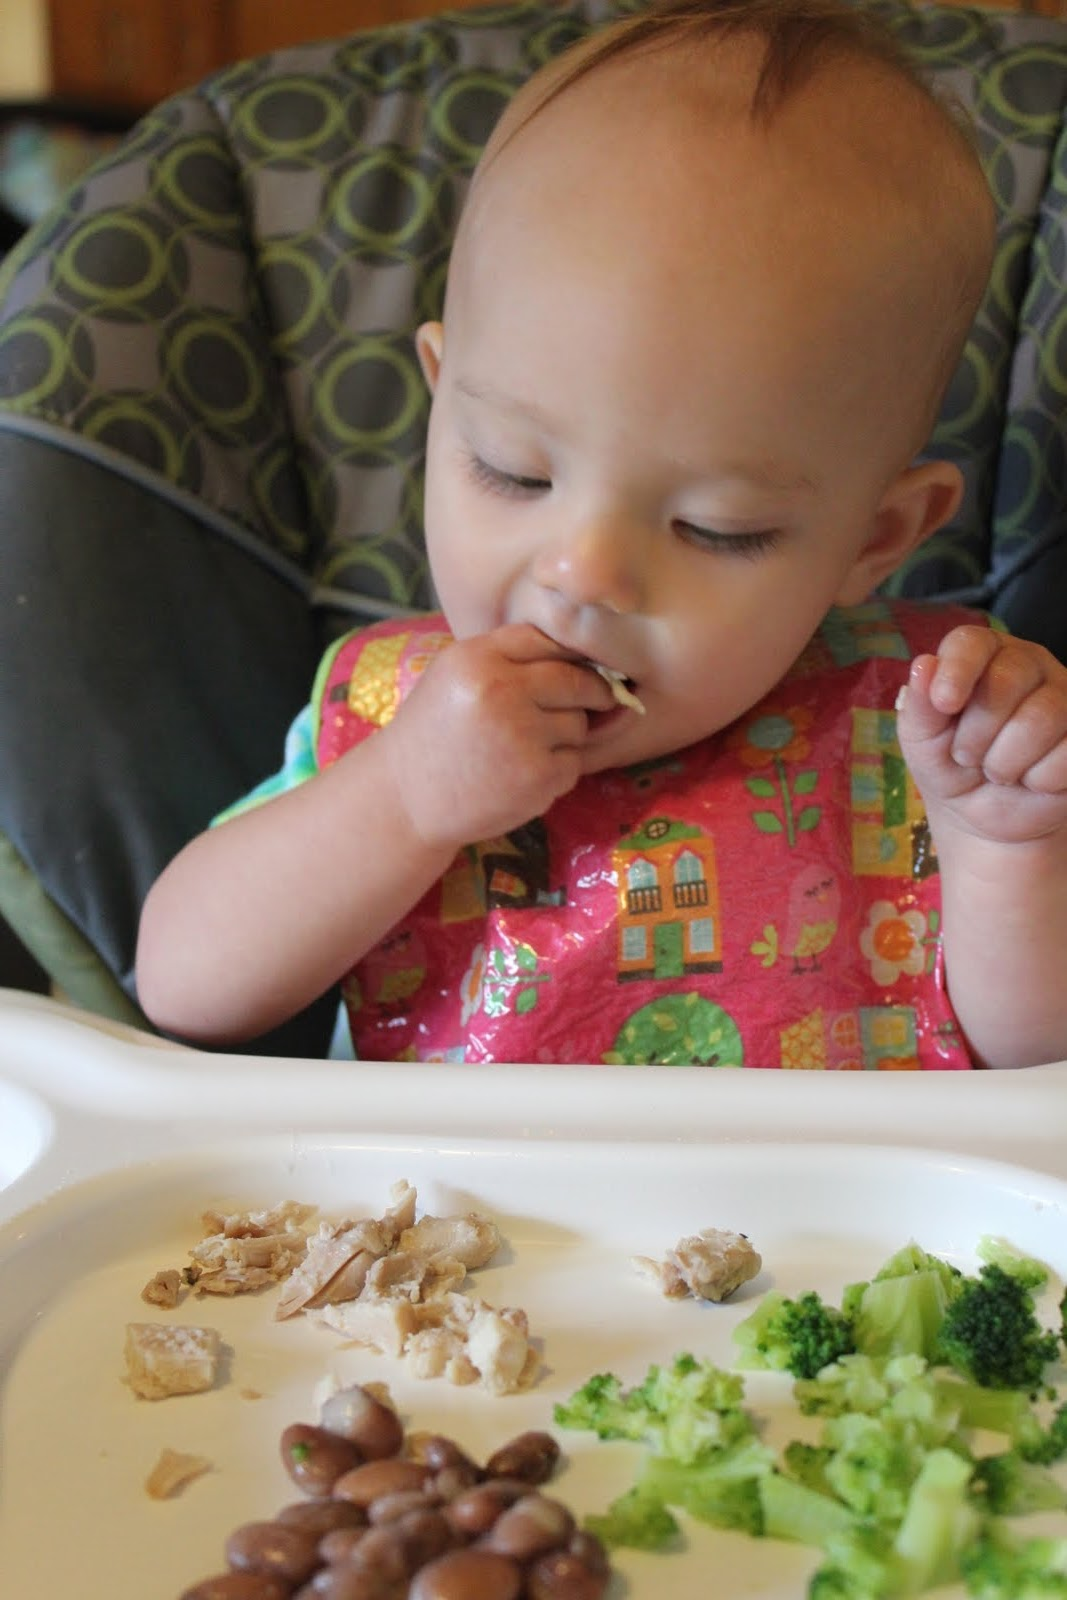 When Can We Give Solid Food To Infants